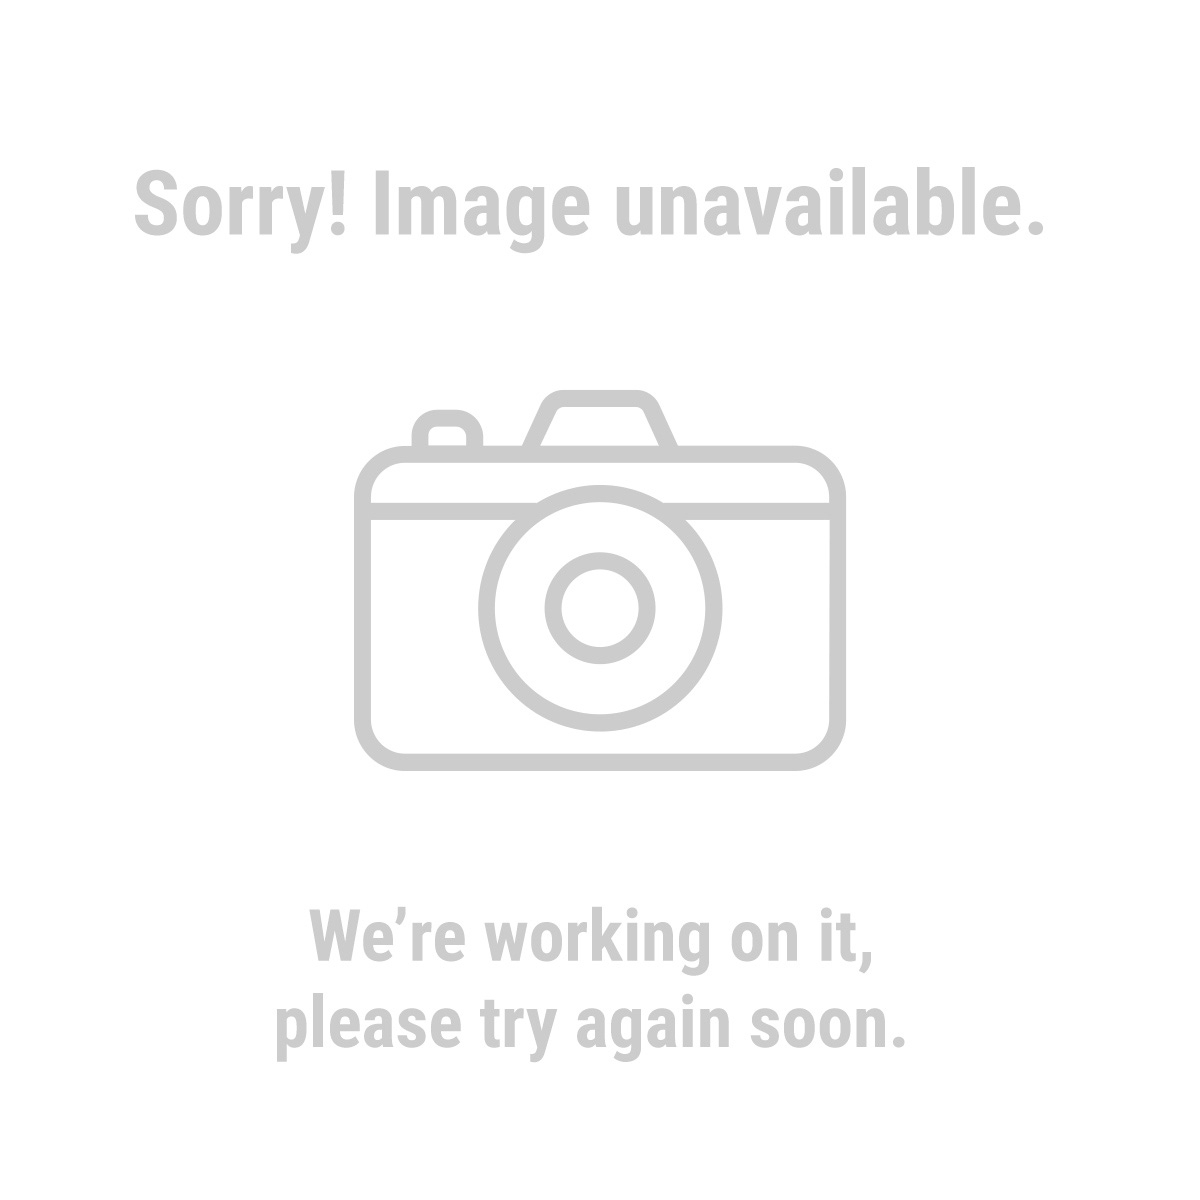 Pacific Hydrostar 69302 1 Horsepower Shallow Well Pump with Stainless Steel Housing